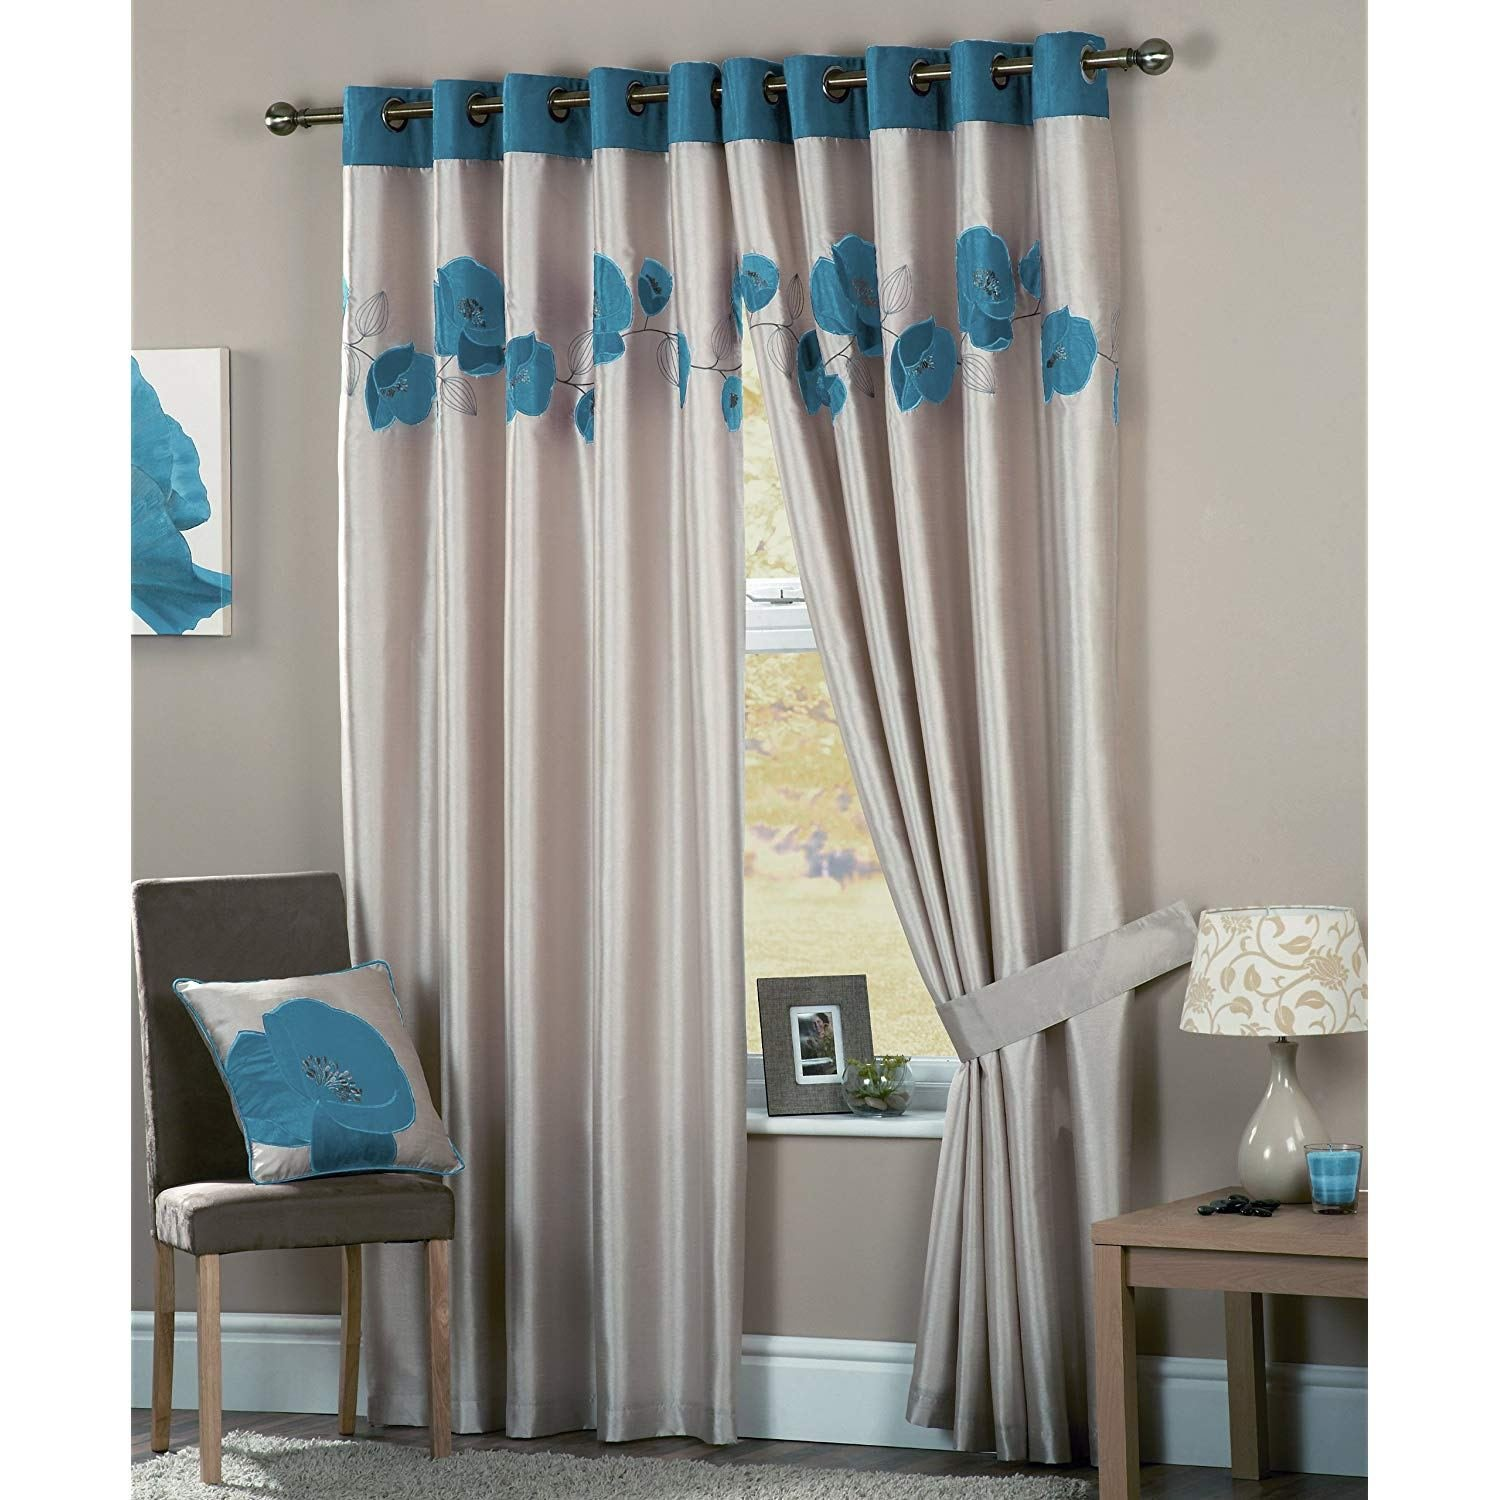 Best Curtina Danielle Eyelet Lined Teal Bedroom Living Room With Pictures